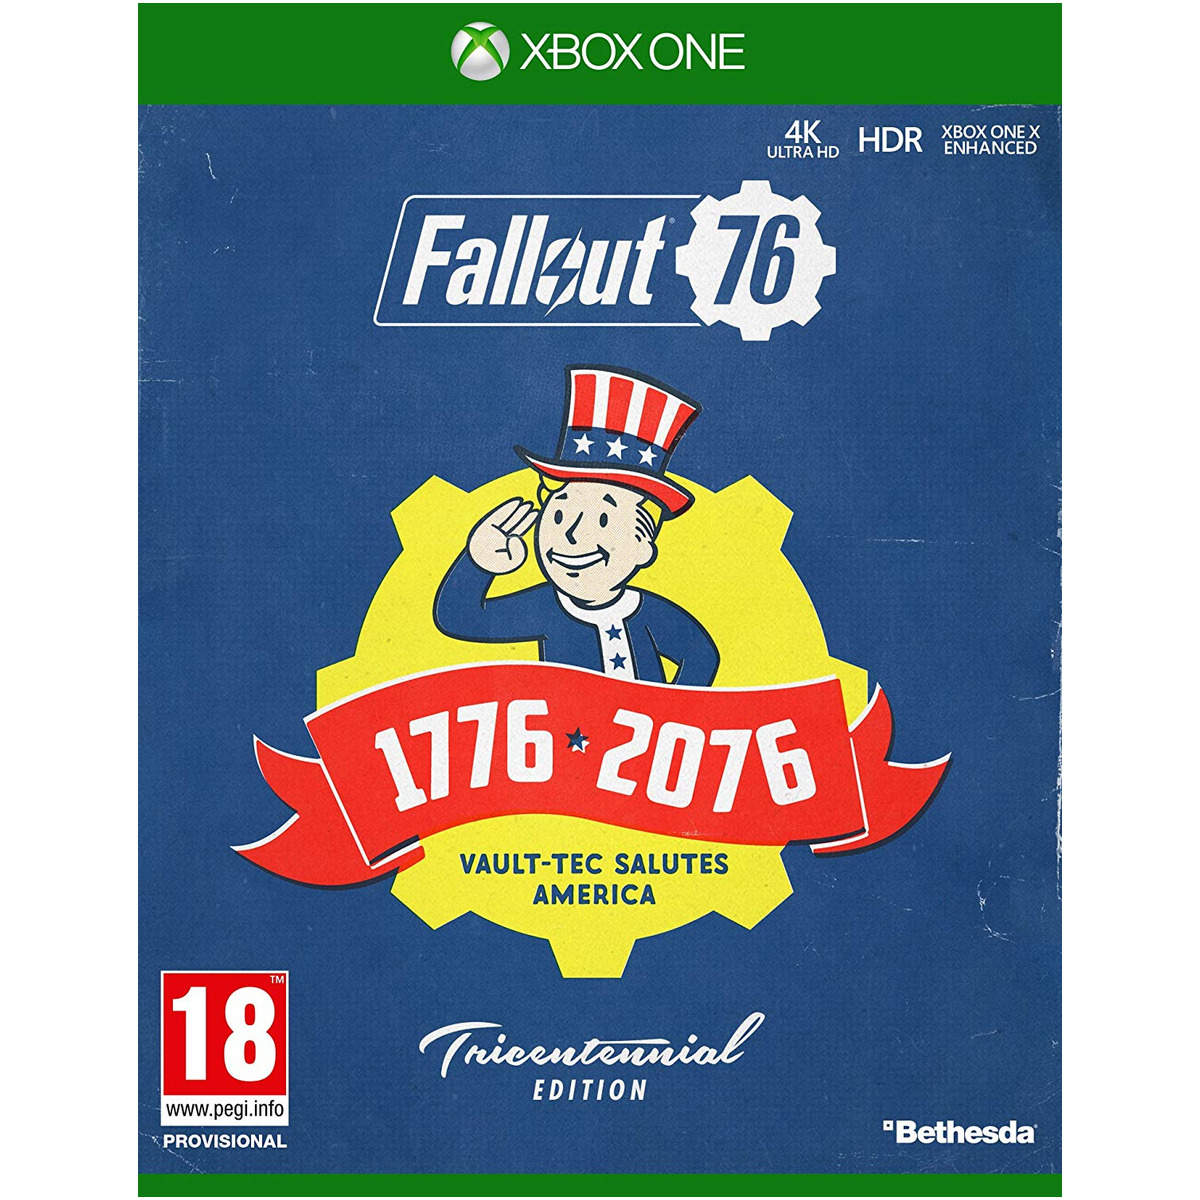 5055856421559-koch-media-fallout-76-tricentennial-edition-xbox-one-speciale-ita